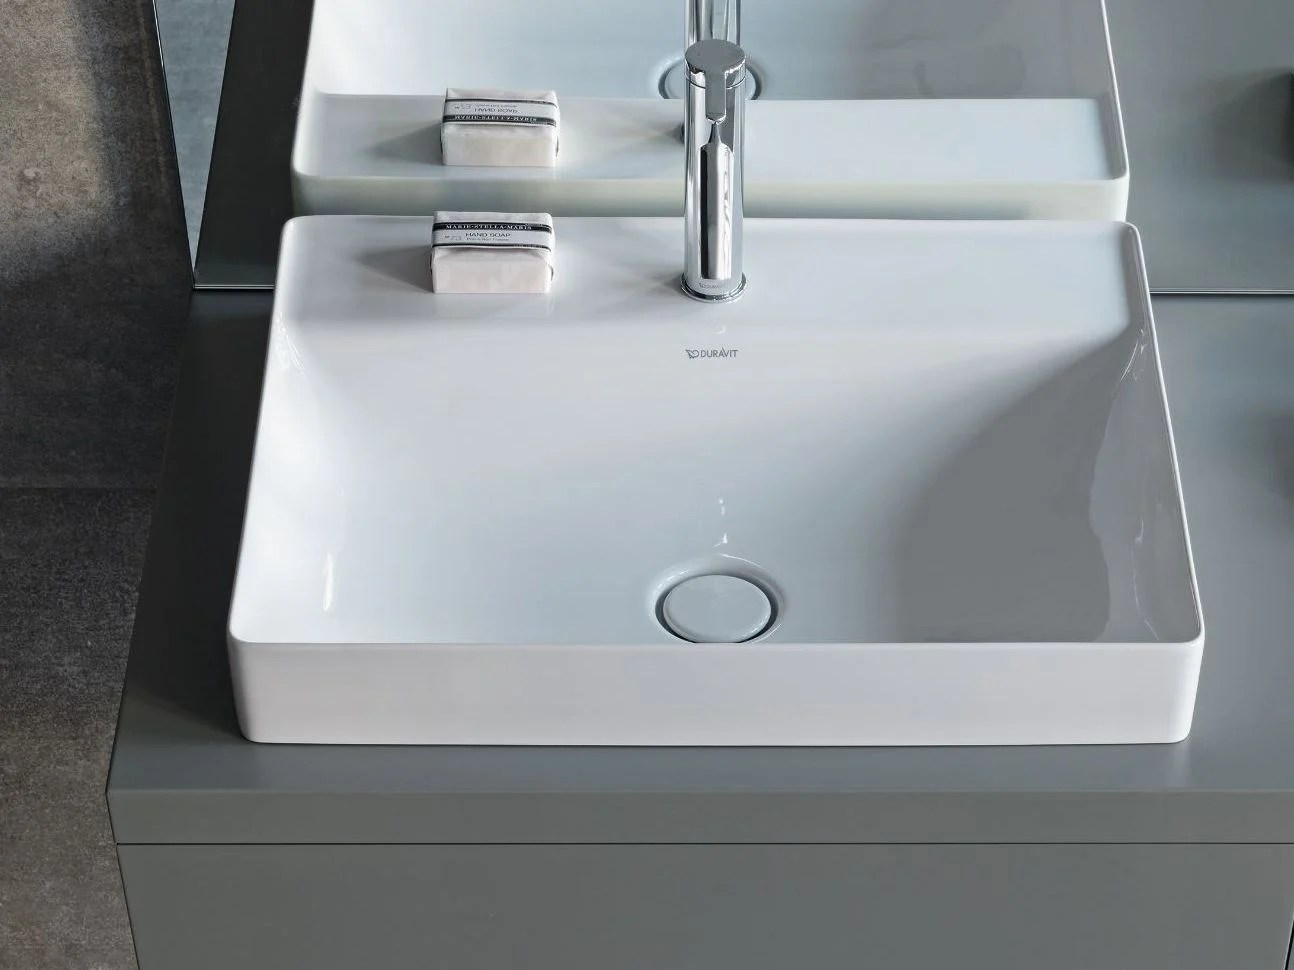 Aufsatzwaschbecken Duravit Duravit Vero Bathroom Sink Bathroom Design App Iphone